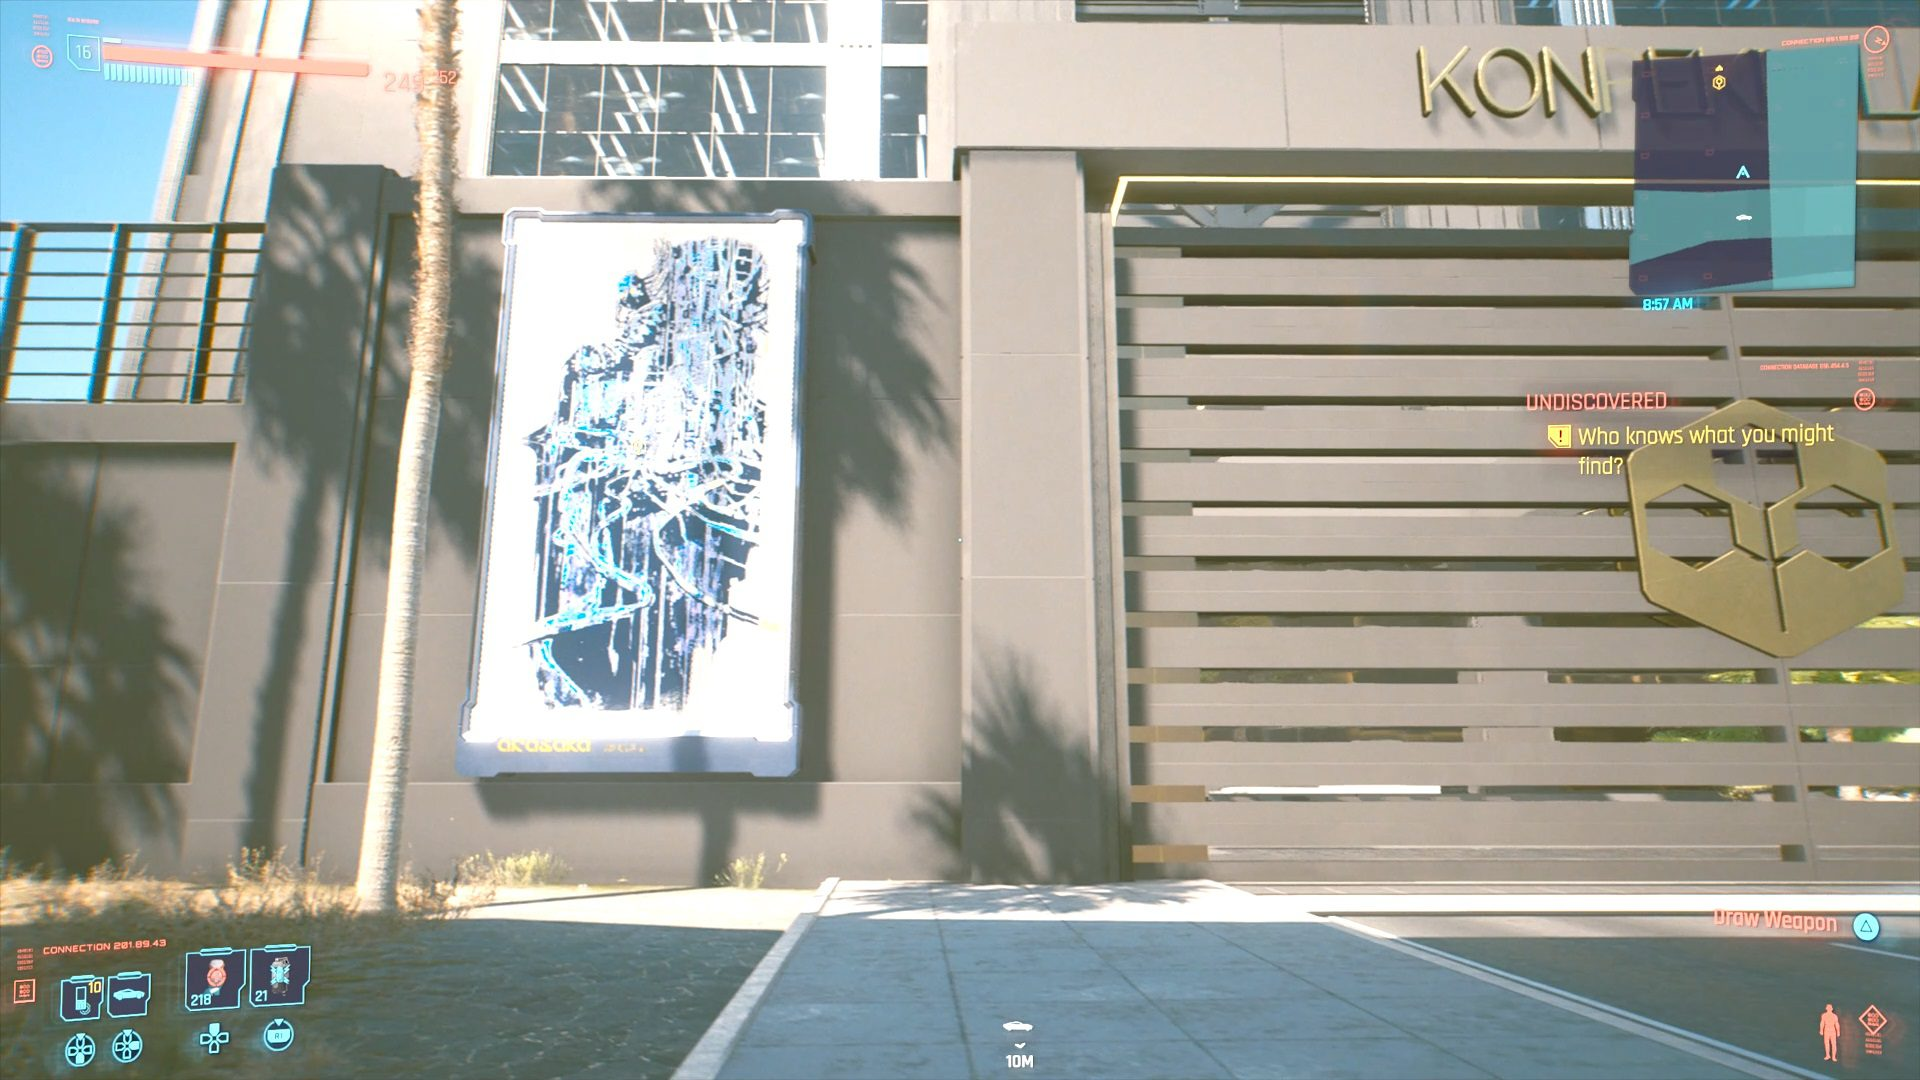 Cyberpunk 2077 The Emperor Tarot Card Graffiti Location